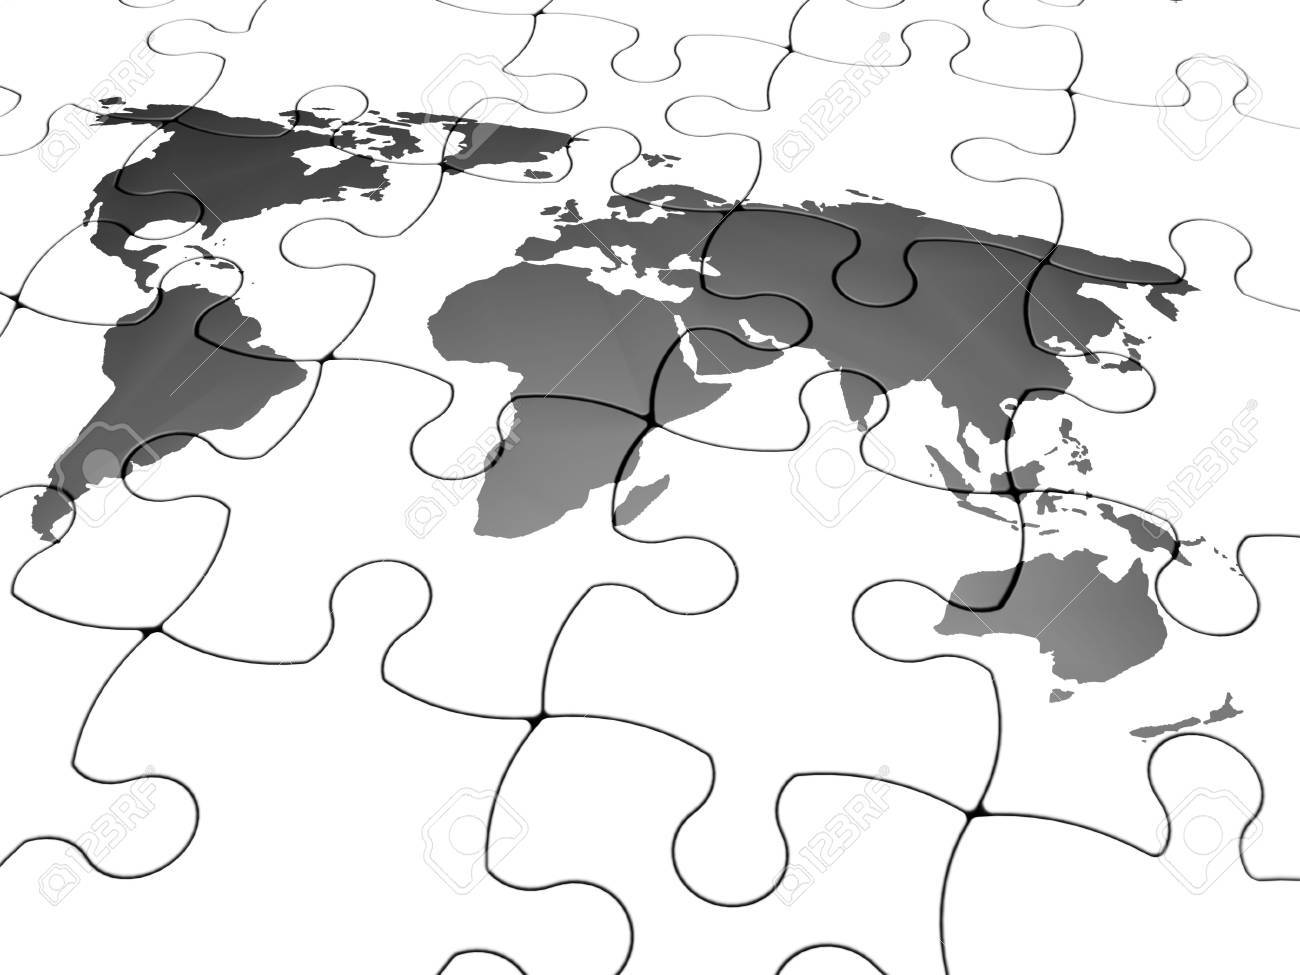 3d render of a jigsaw puzzle with the world map stock photo picture 3d render of a jigsaw puzzle with the world map stock photo 833623 gumiabroncs Gallery